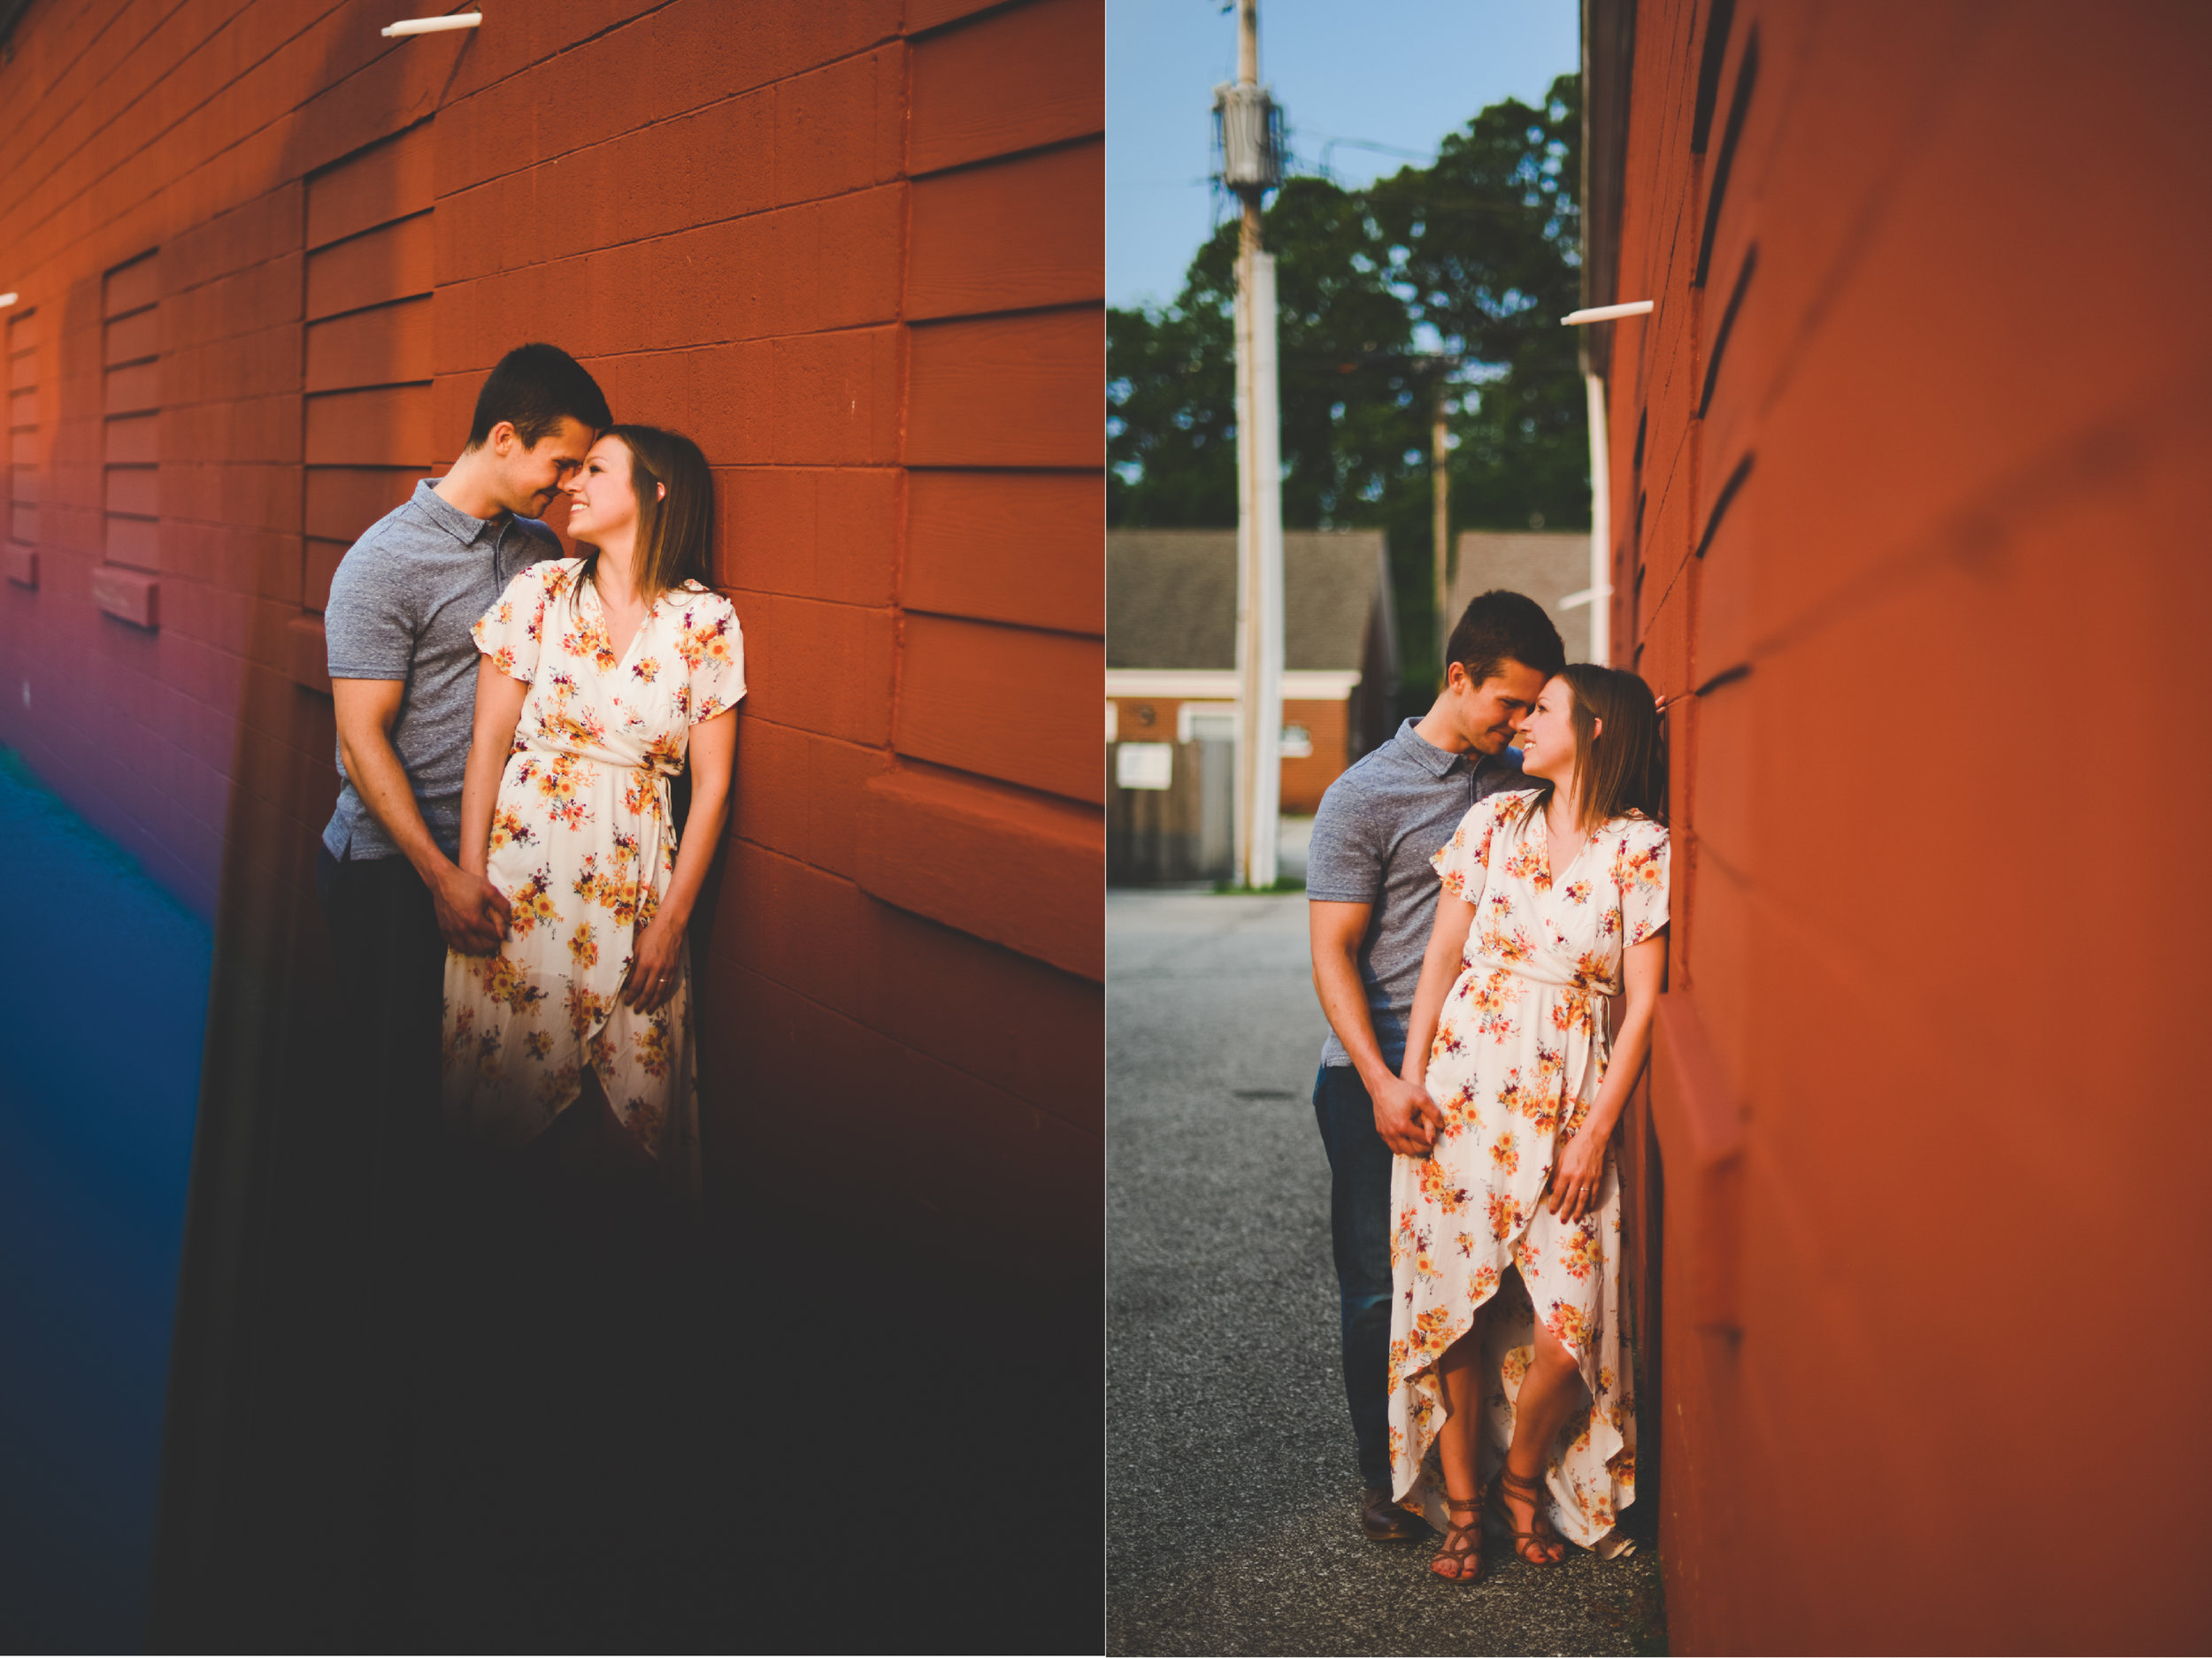 Zionsville engagement photography - Abby and Garrett